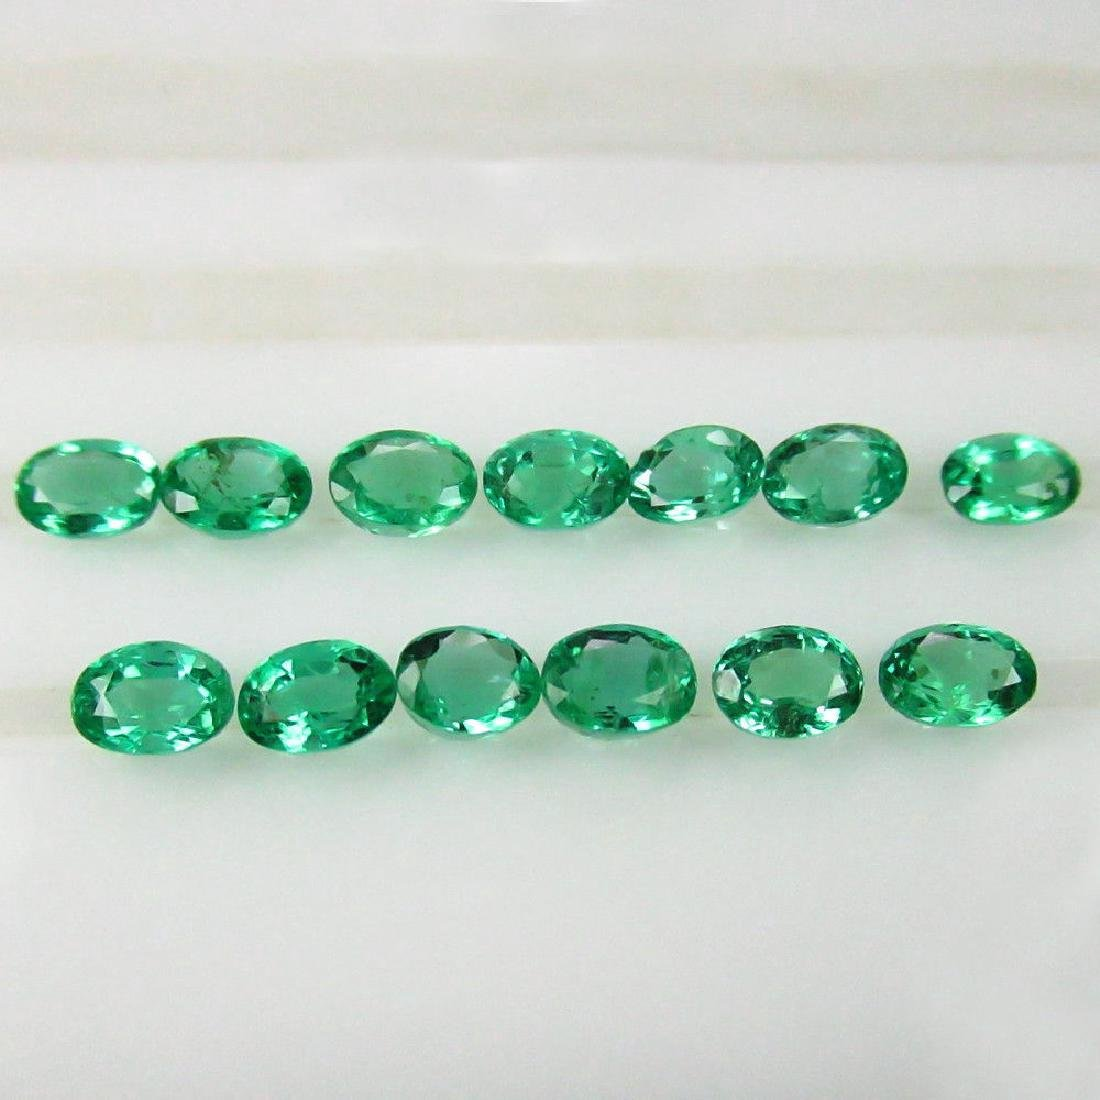 2.36 Carat - 13 Loose Emeralds